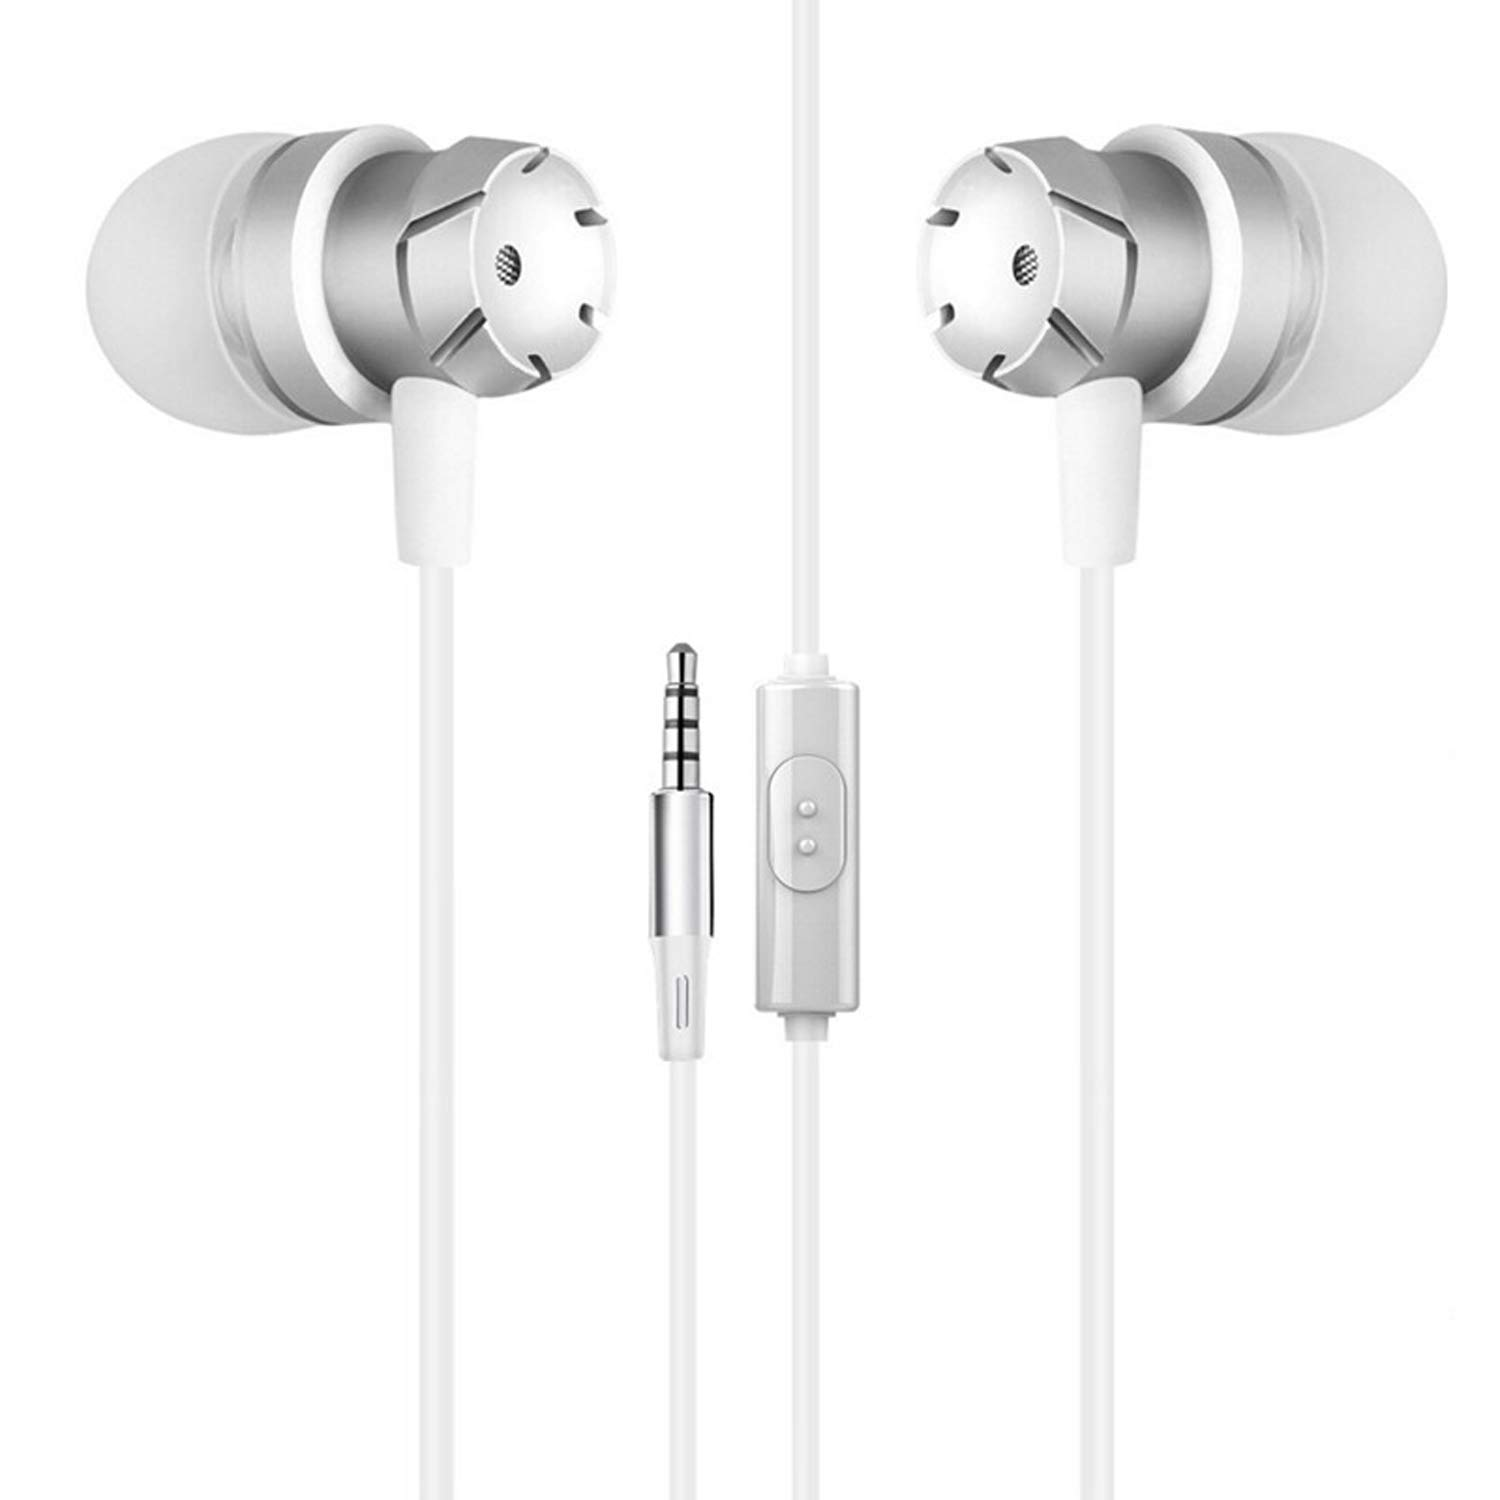 in-Ear Earphones, 3.5mm Wired Metal Earbuds, in Ear Headphones with Mic and Case Bass Stereo Noise Isolating Ear Buds for Gym